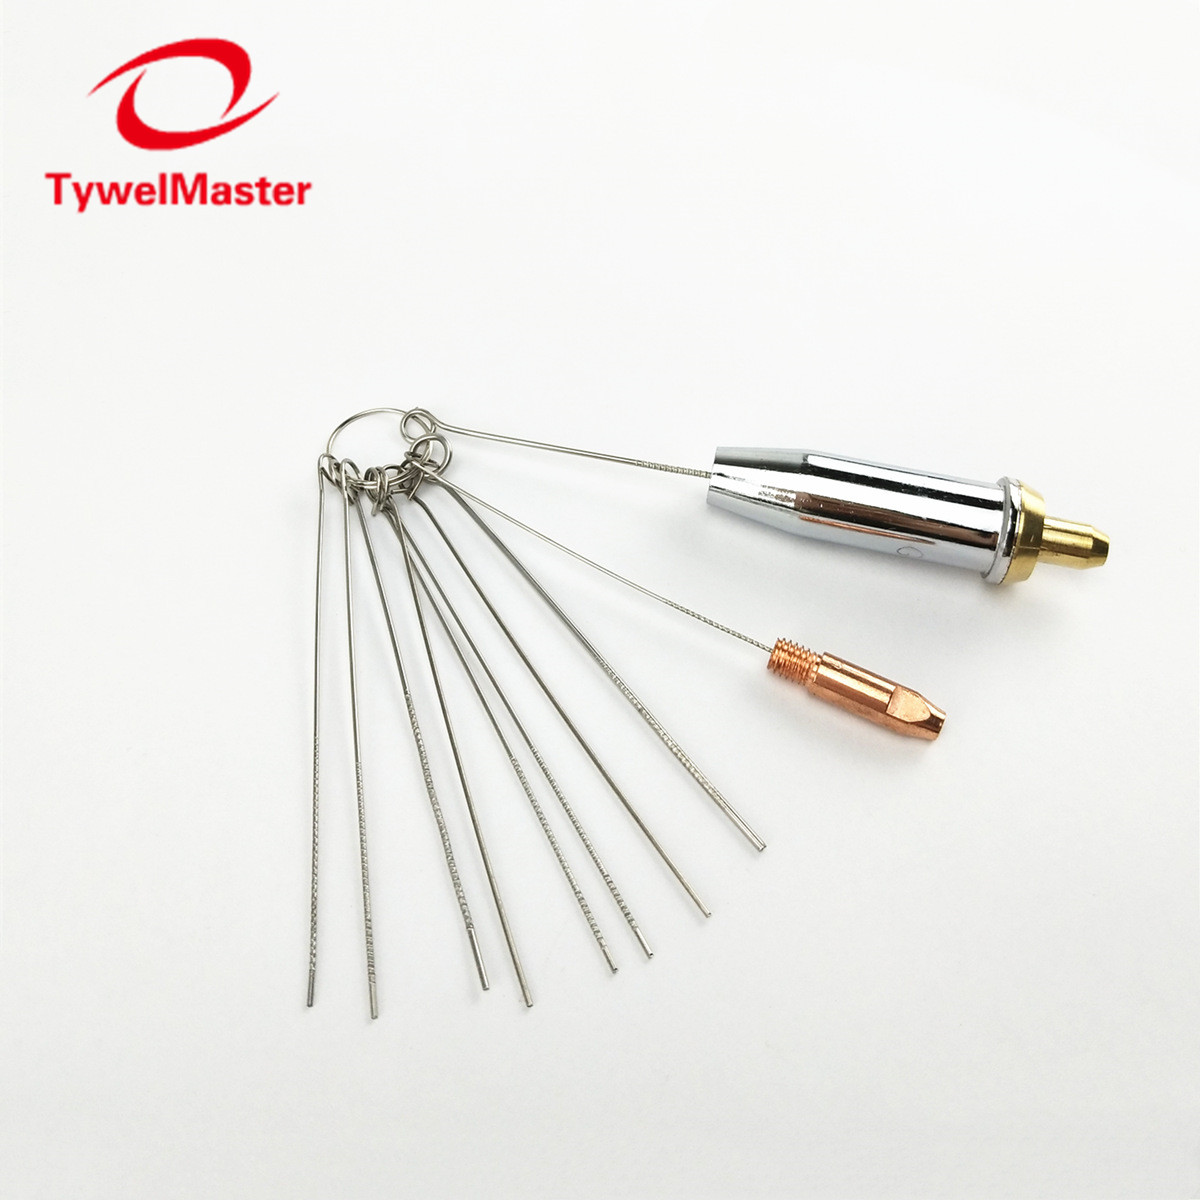 Nozzle Cleaner Gas Welding Brazing Cutting Torch Tip Cleaner 10Pcs Set 0.6mm-1.3mm Guitar Nut Needle Files Nozzle Jet